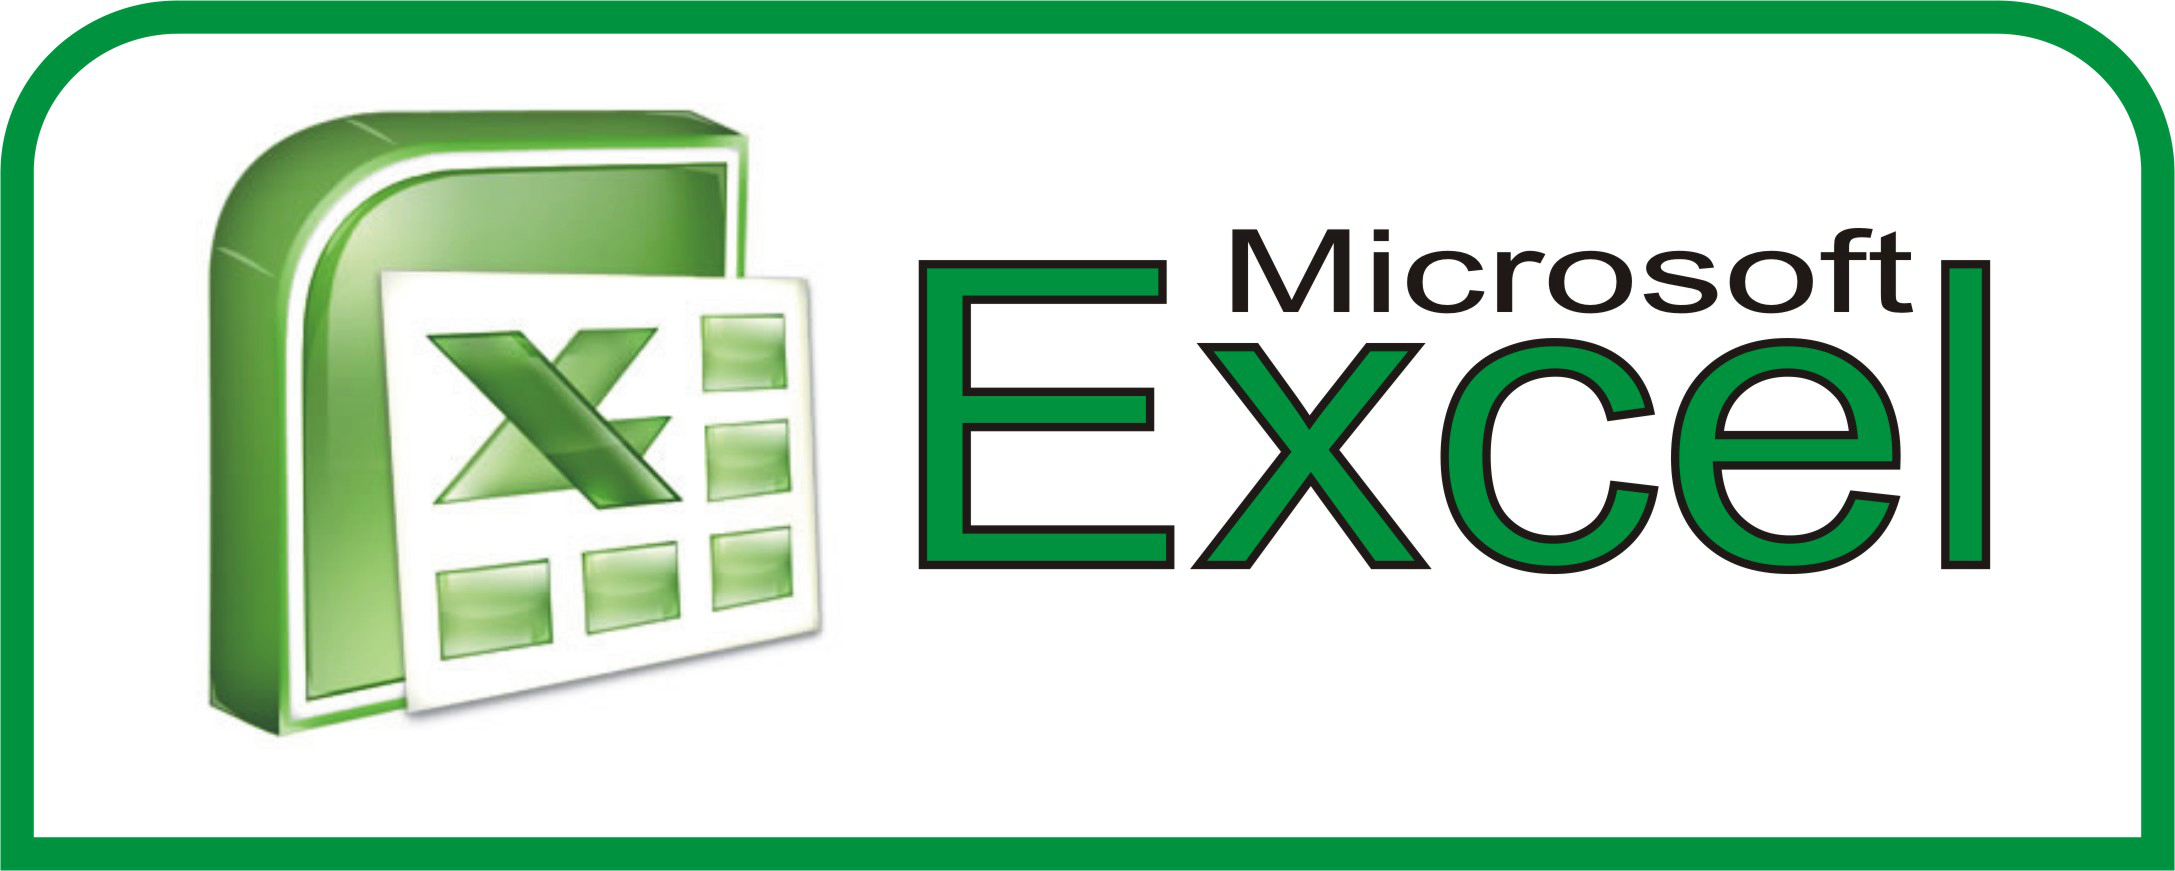 Ediblewildsus  Nice  Excel Shortcuts You Probably Didnt Know About  Techdissected With Glamorous Average If Excel Besides Excel If And Statement Furthermore Save Excel As Pdf With Beauteous Excel Quotes Also How To Divide A Column In Excel In Addition Dcf Excel Template And Change Column Width In Excel As Well As How To Parse Data In Excel Additionally Excel Time From Techdissectedcom With Ediblewildsus  Glamorous  Excel Shortcuts You Probably Didnt Know About  Techdissected With Beauteous Average If Excel Besides Excel If And Statement Furthermore Save Excel As Pdf And Nice Excel Quotes Also How To Divide A Column In Excel In Addition Dcf Excel Template From Techdissectedcom